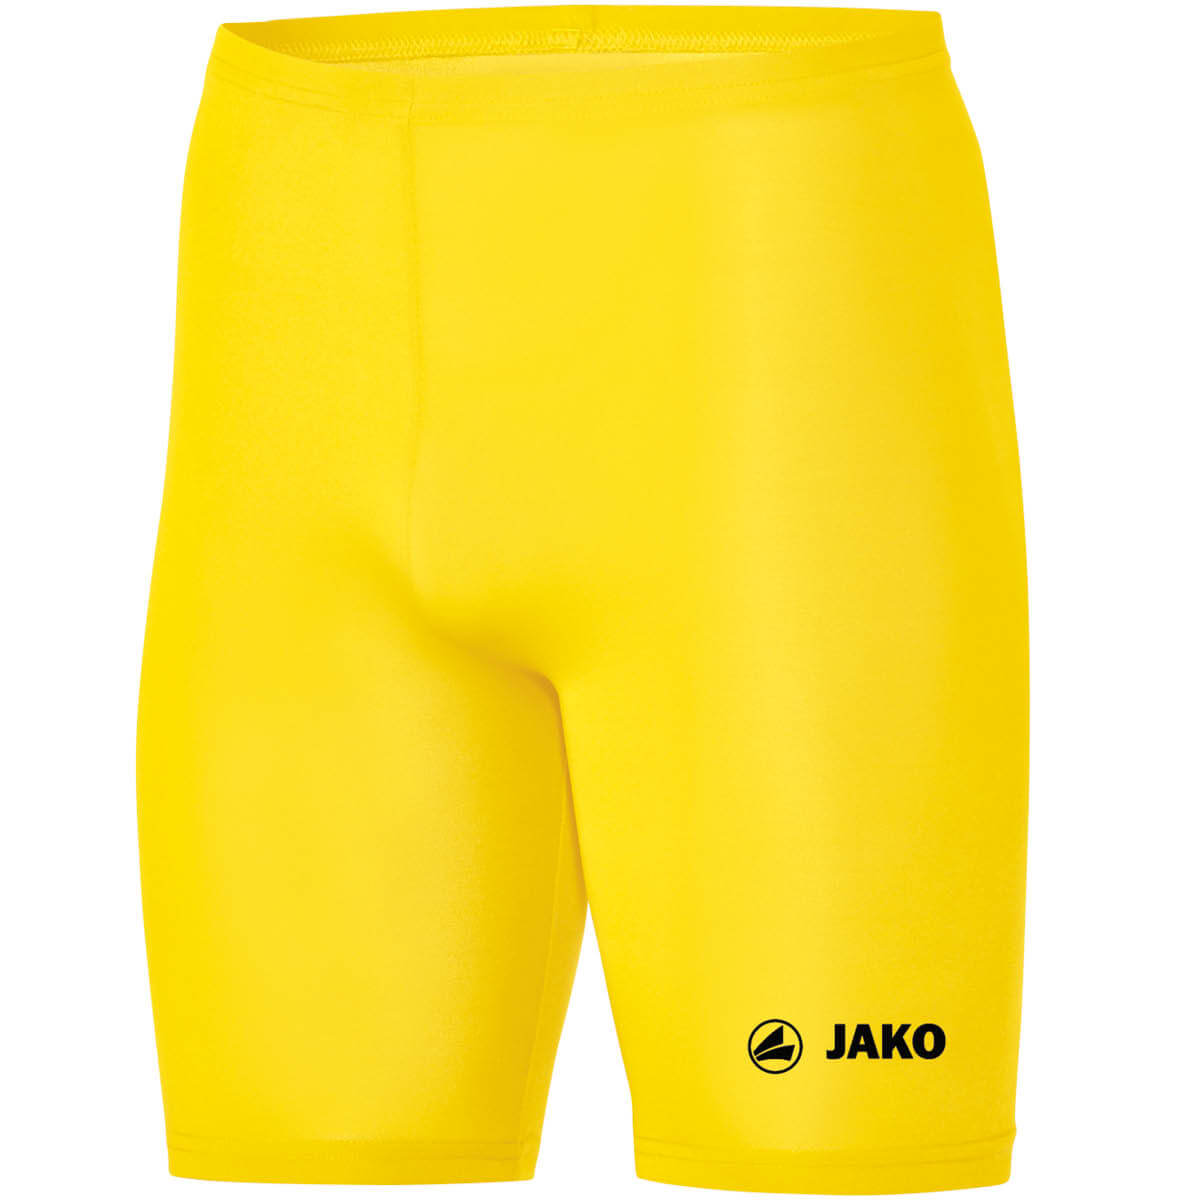 Tight Basic 2.0 - Kinder | Jako 8516